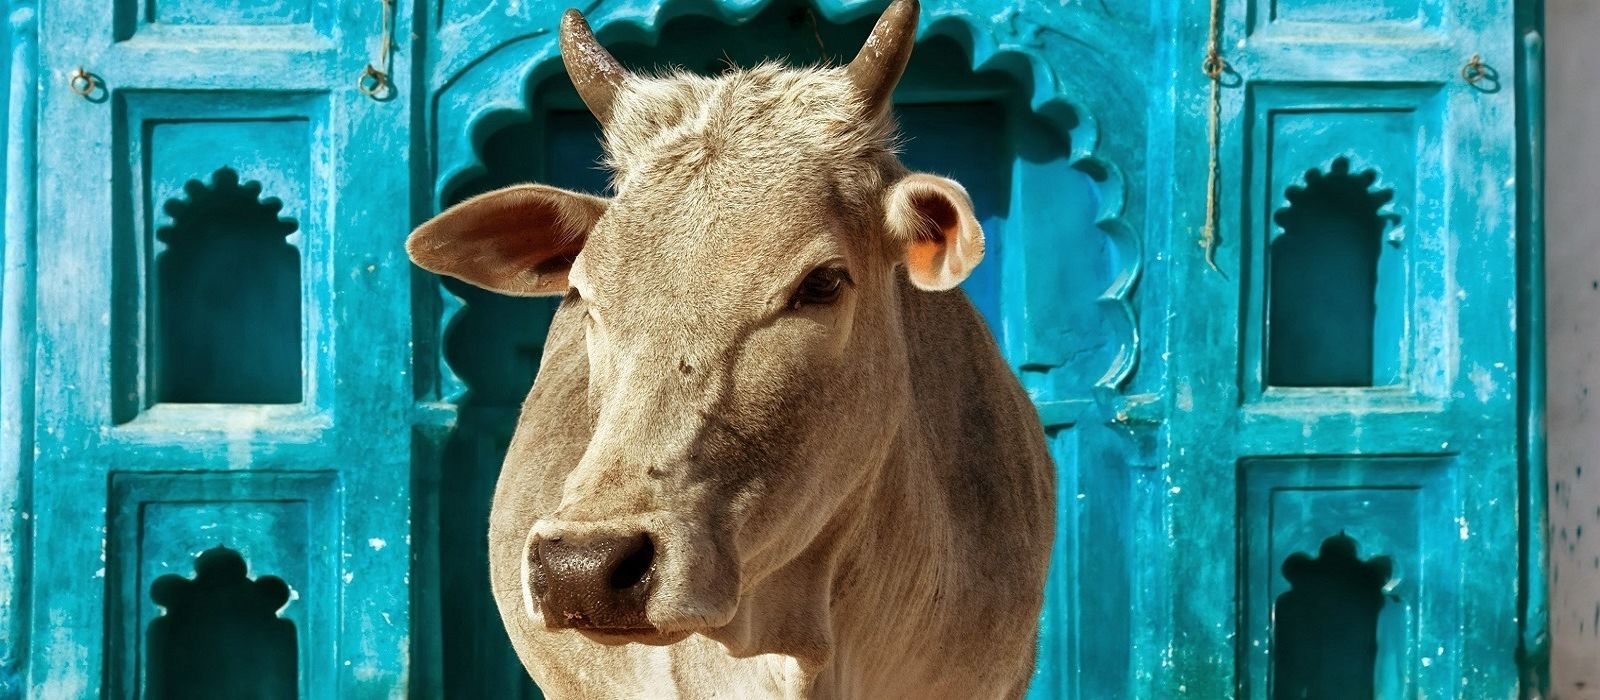 The cow is a sacred animal in India.